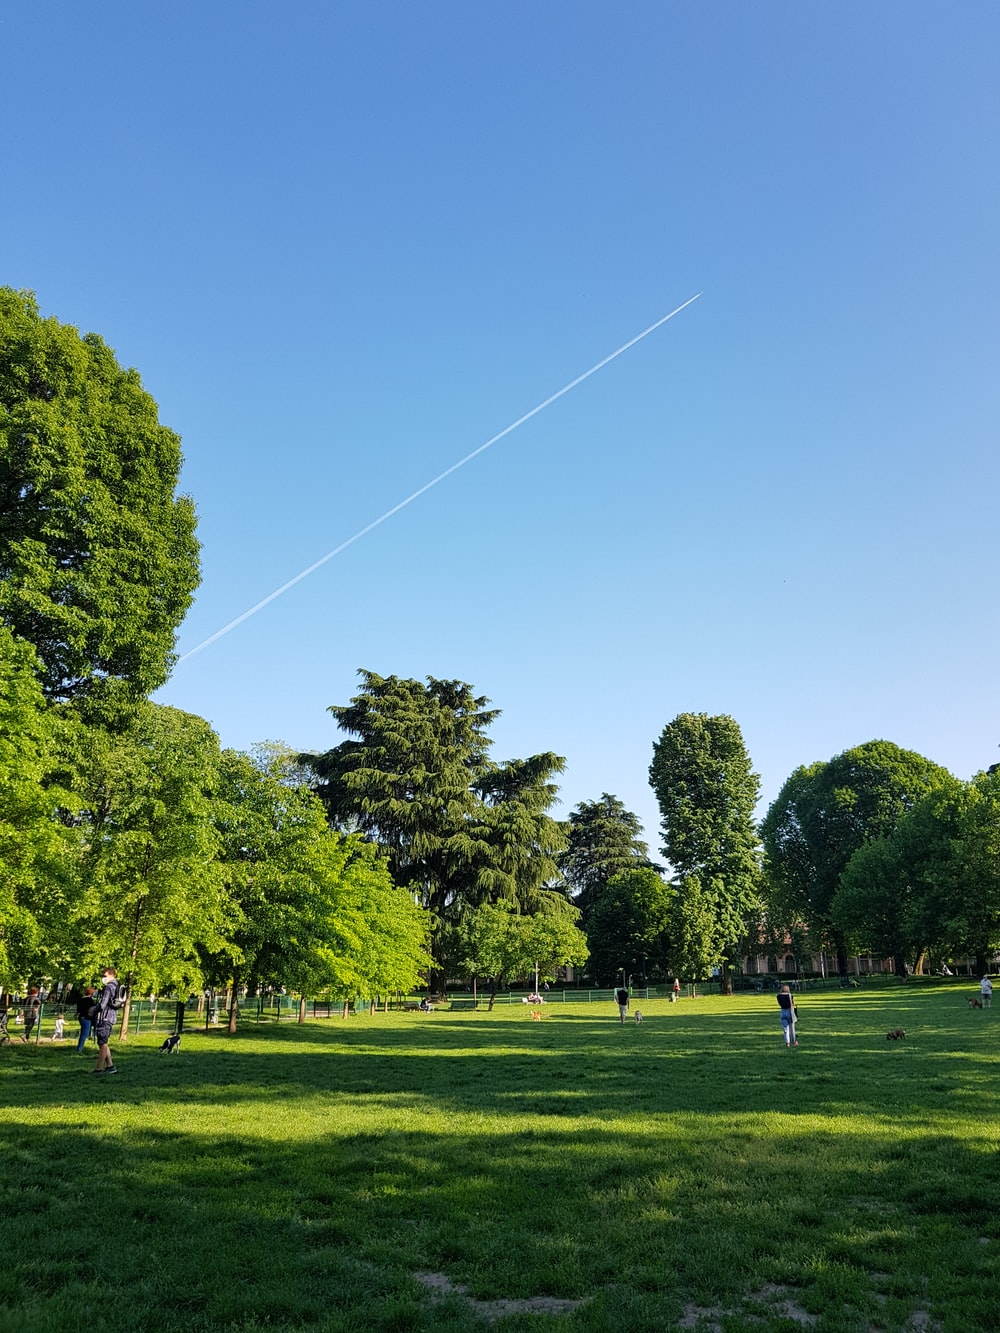 people walking on green grass field near green trees under blue sky during daytime